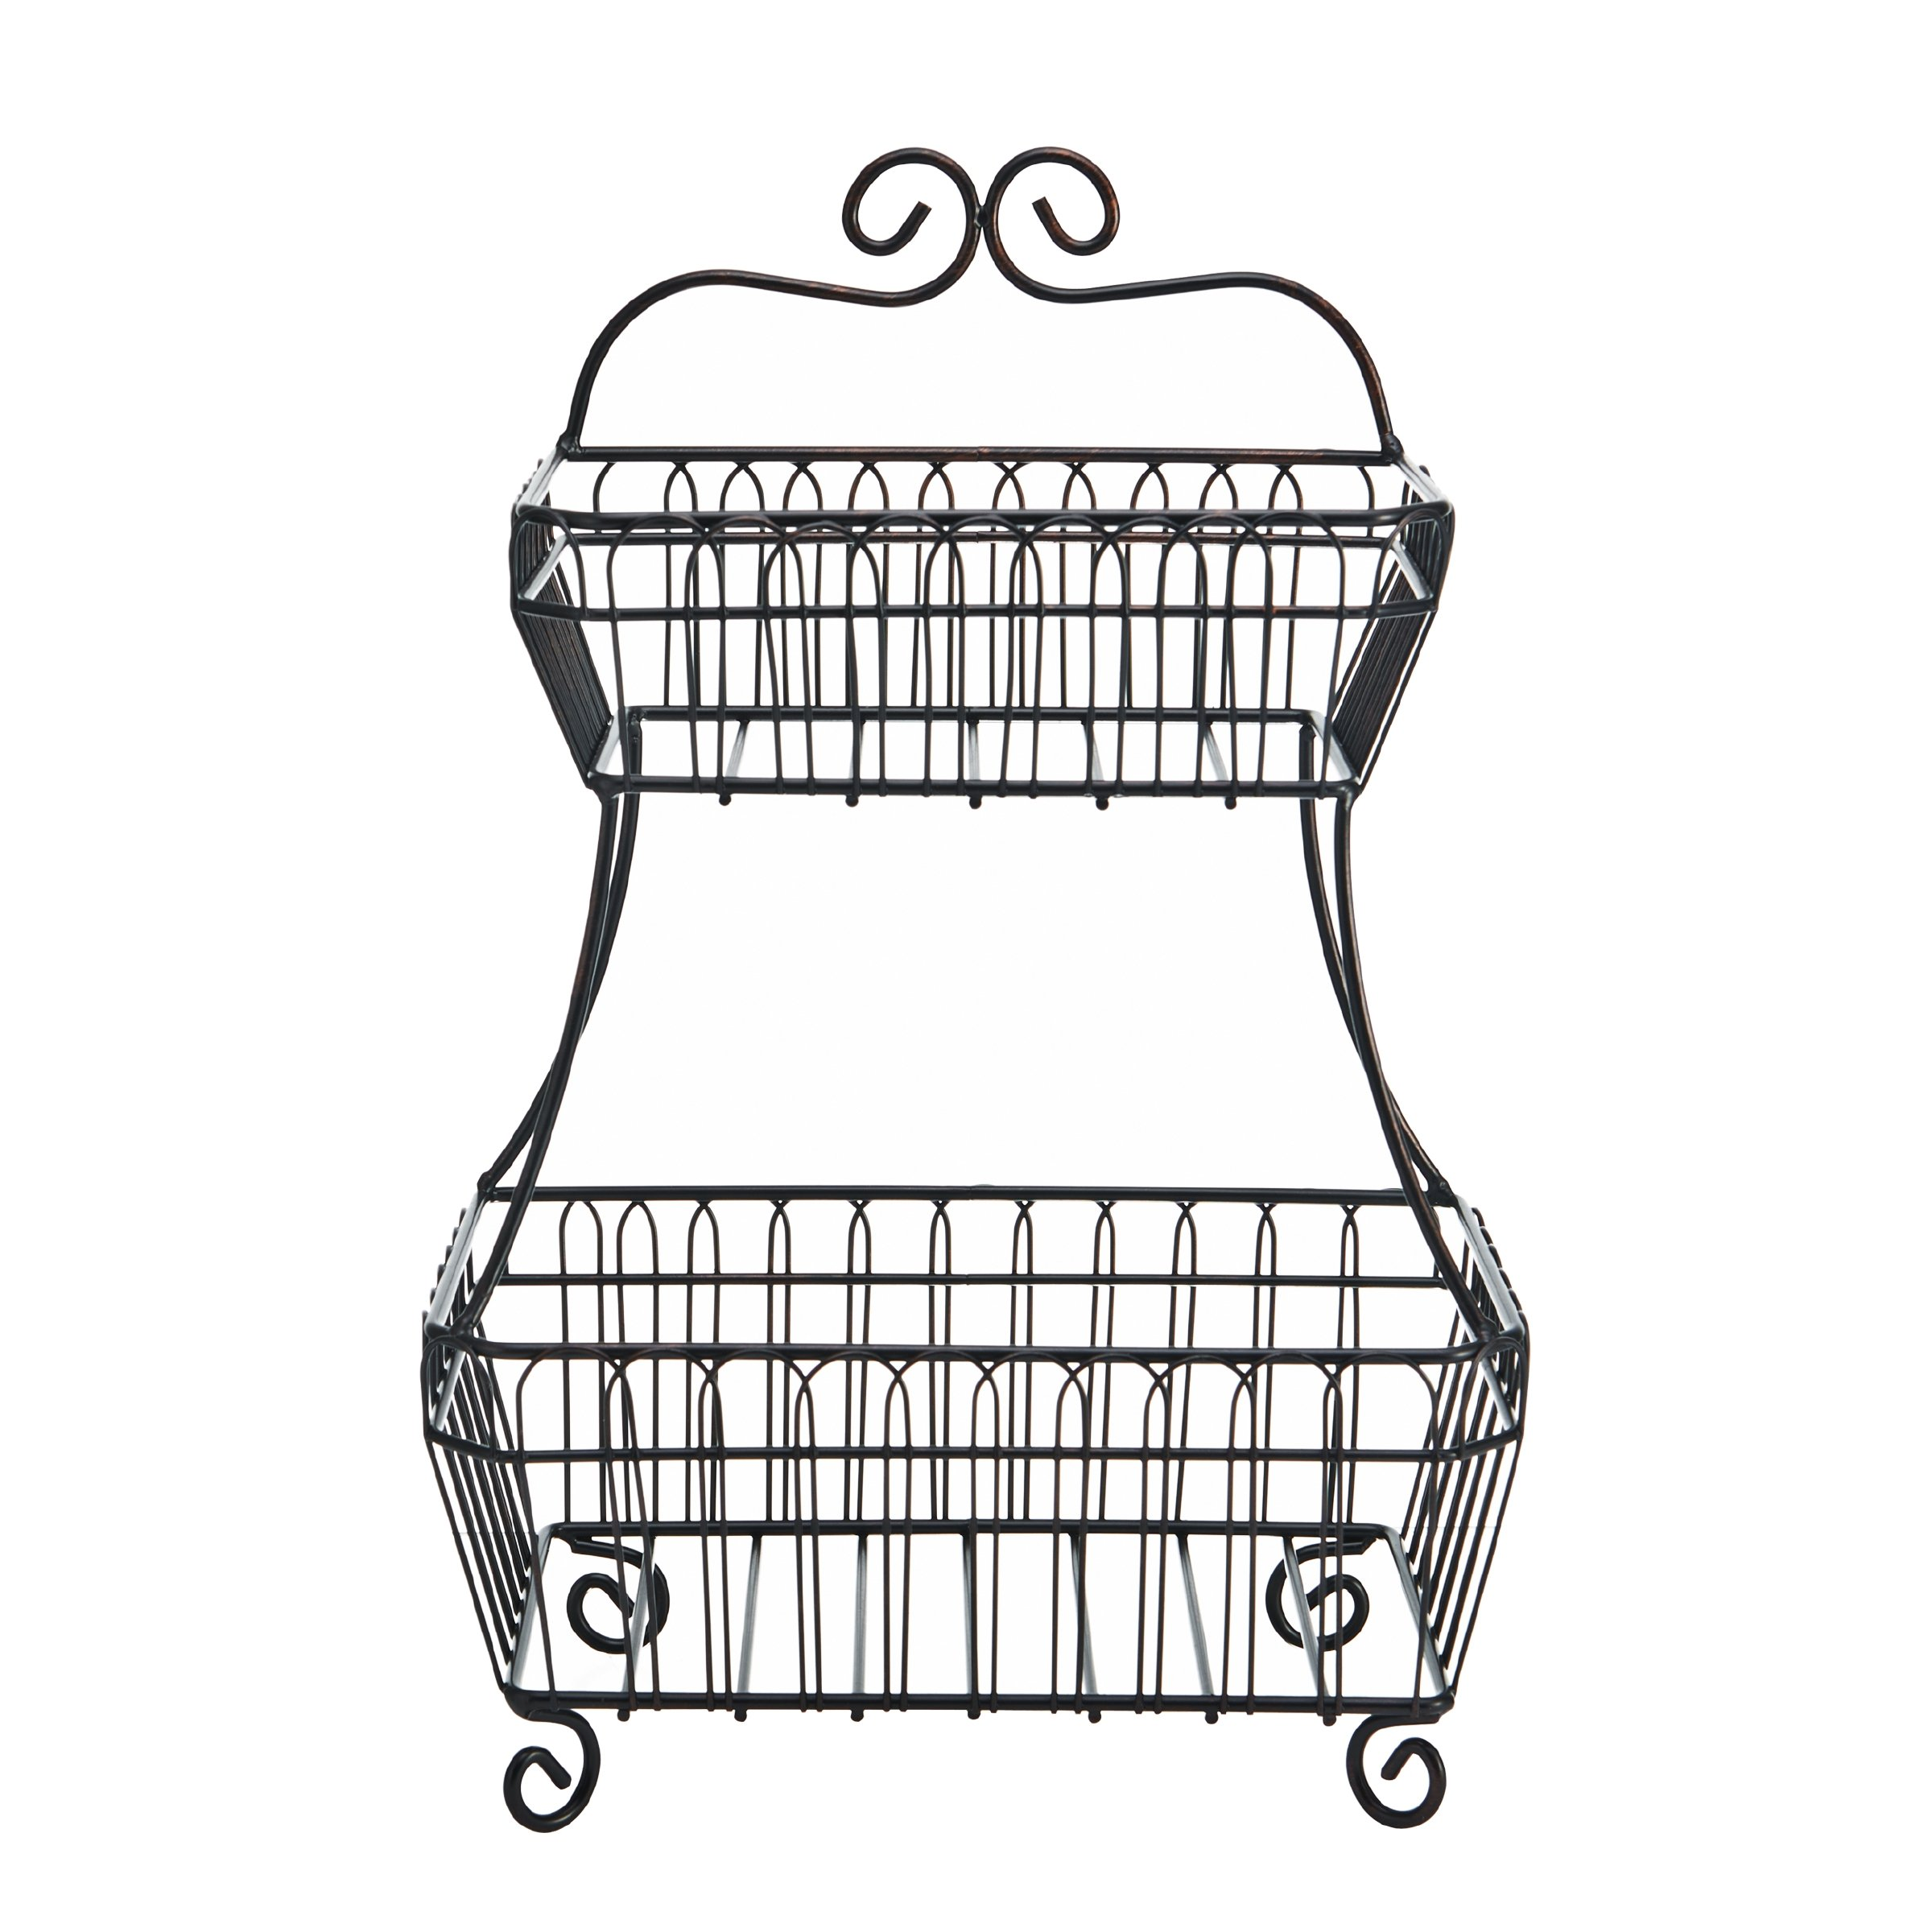 Gourmet Basics by Mikasa 5190751 French Countryside 2-Tier Flatback Metal Storage Basket, Antique Black